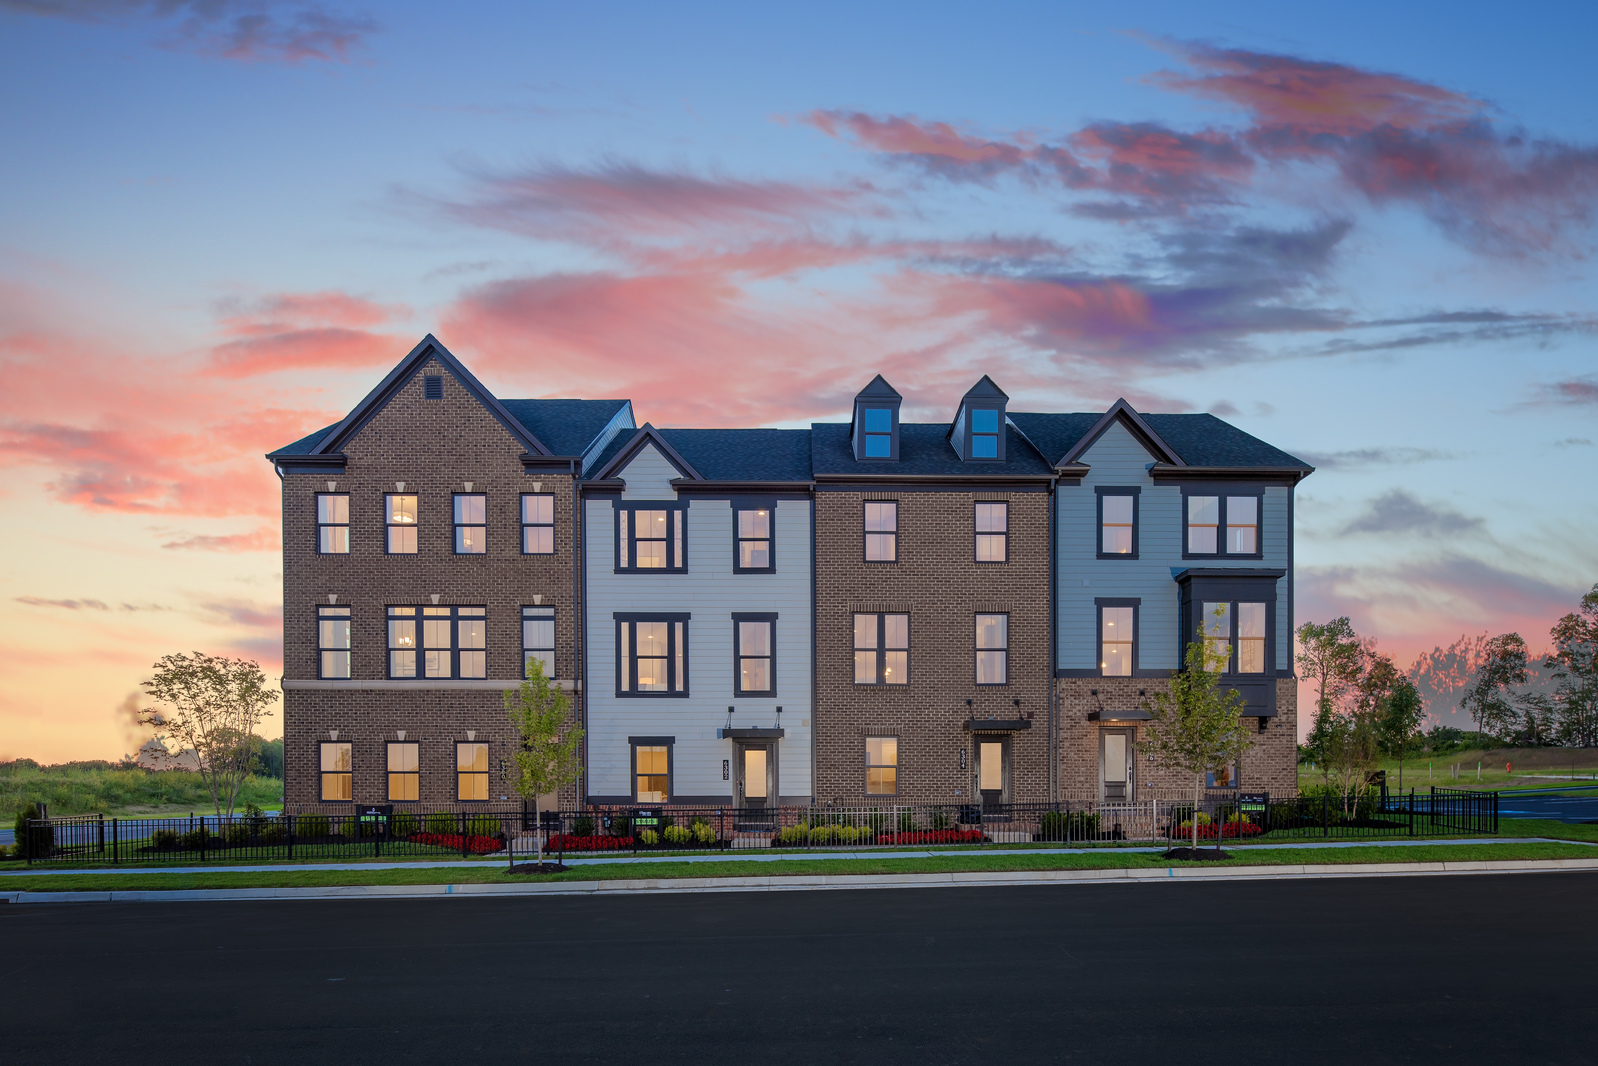 New strauss townhome model for sale at greenleigh in baltimore md baltimore county perry hall high school school district solutioingenieria Gallery